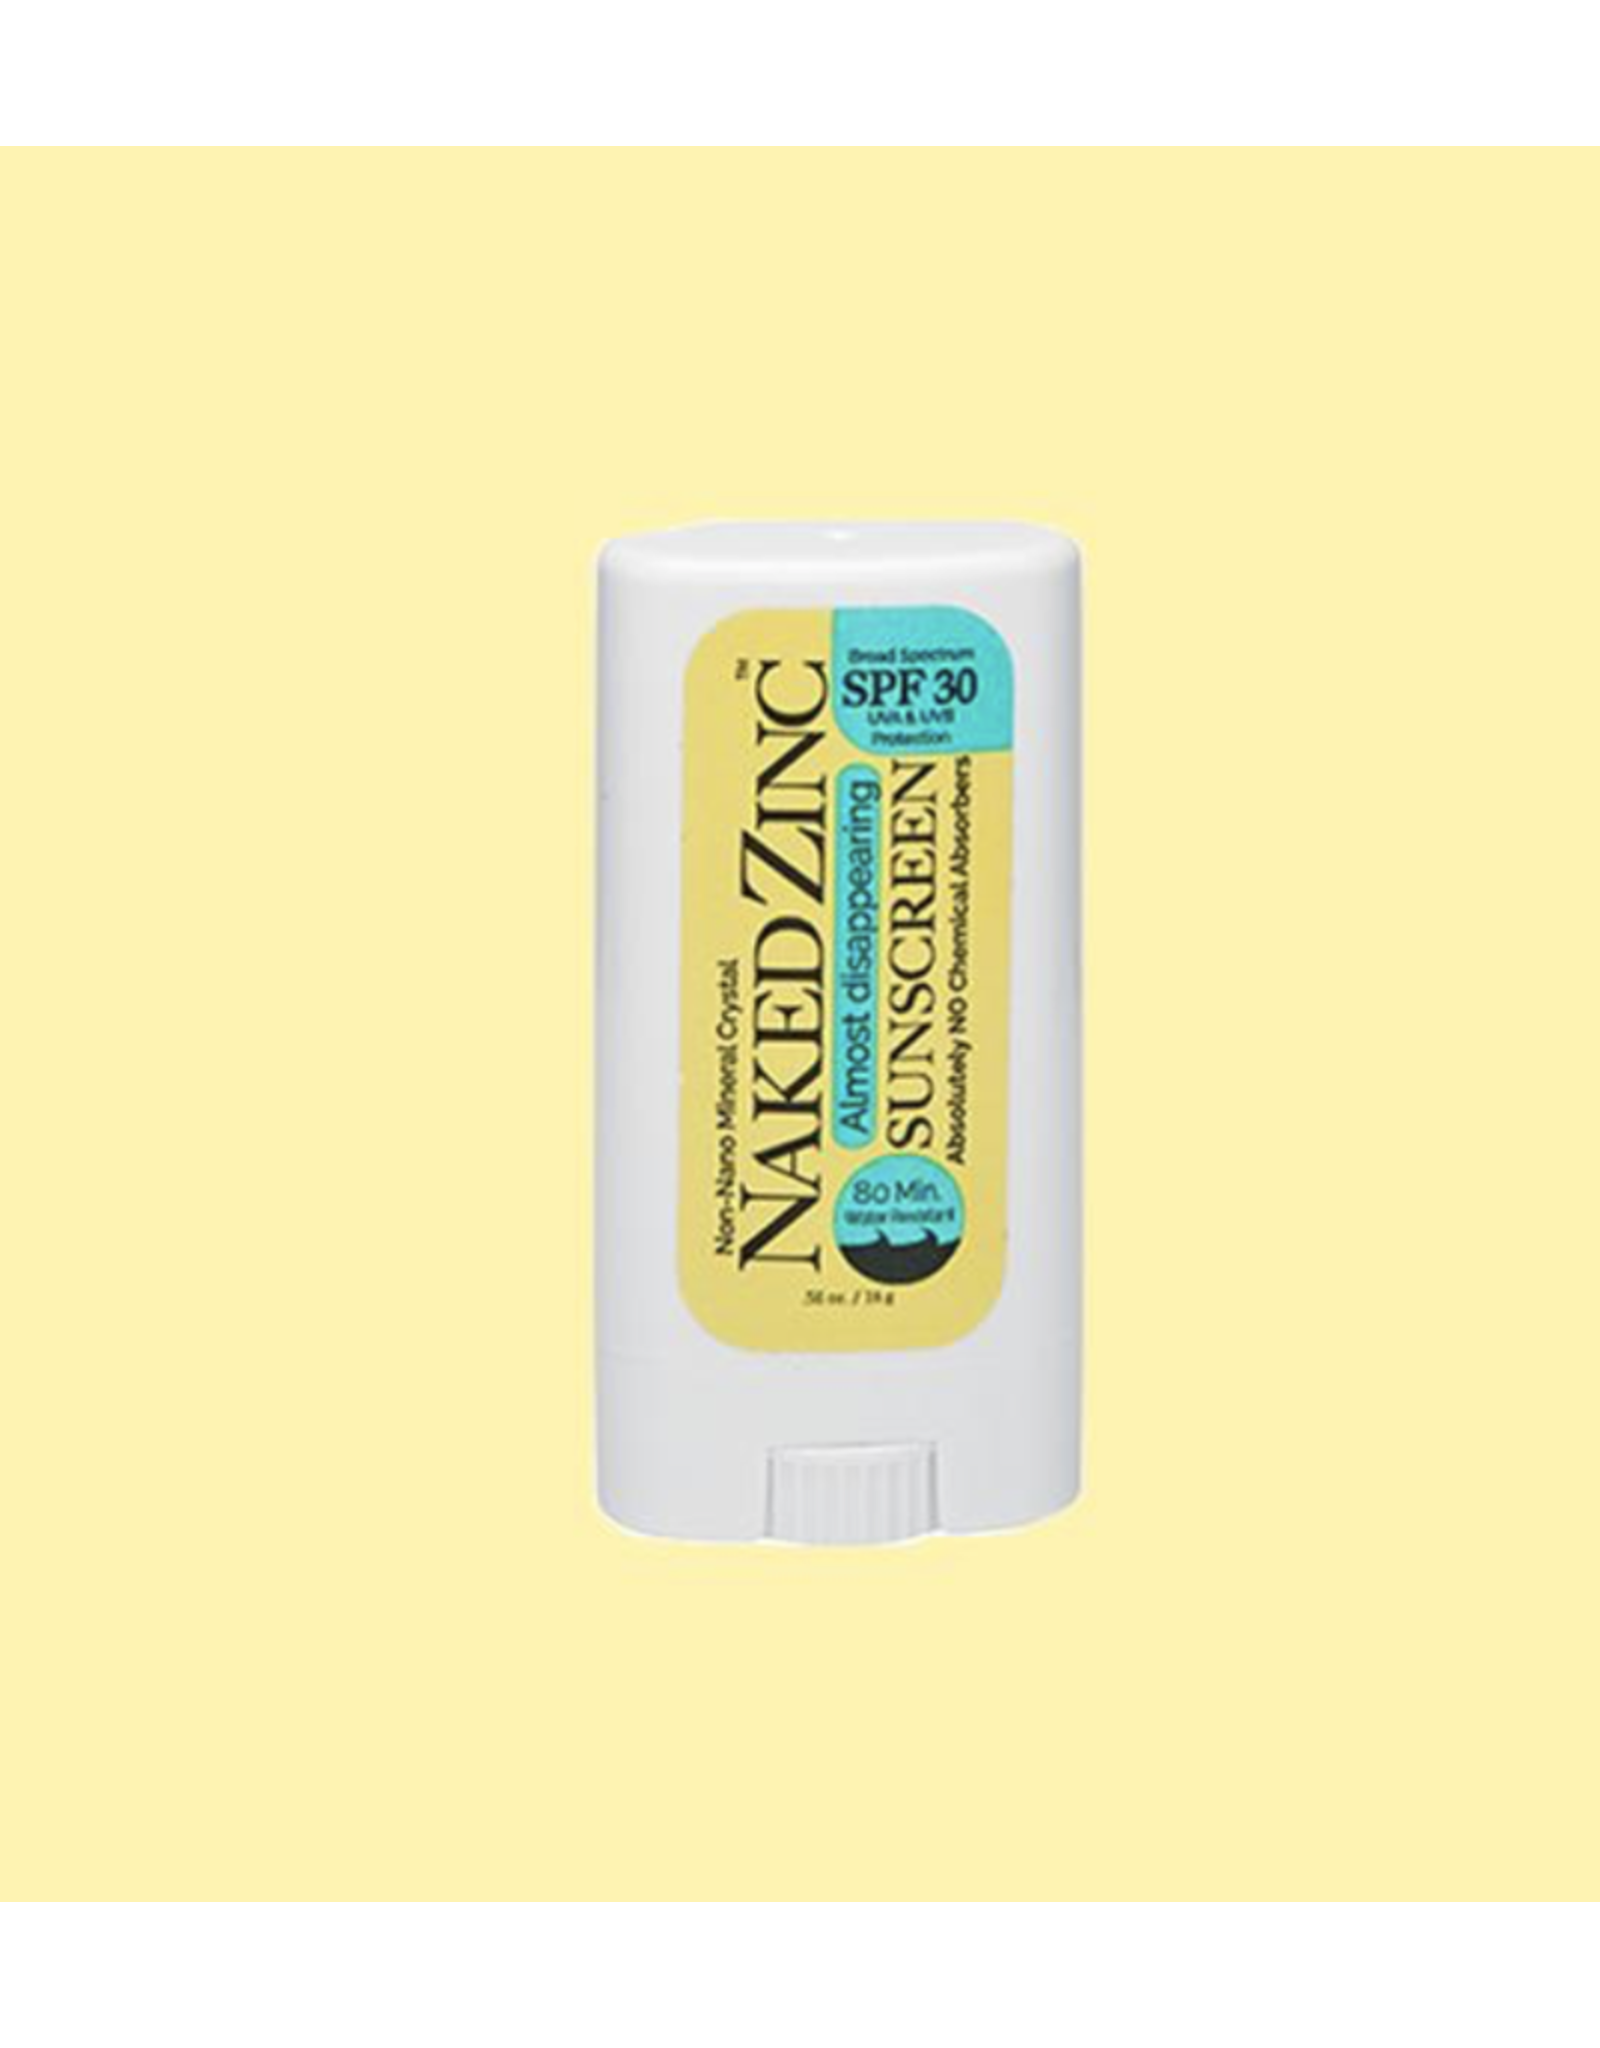 NAKED ZINC 0.56 OZ SPF 30 SUNSCREEN STICK